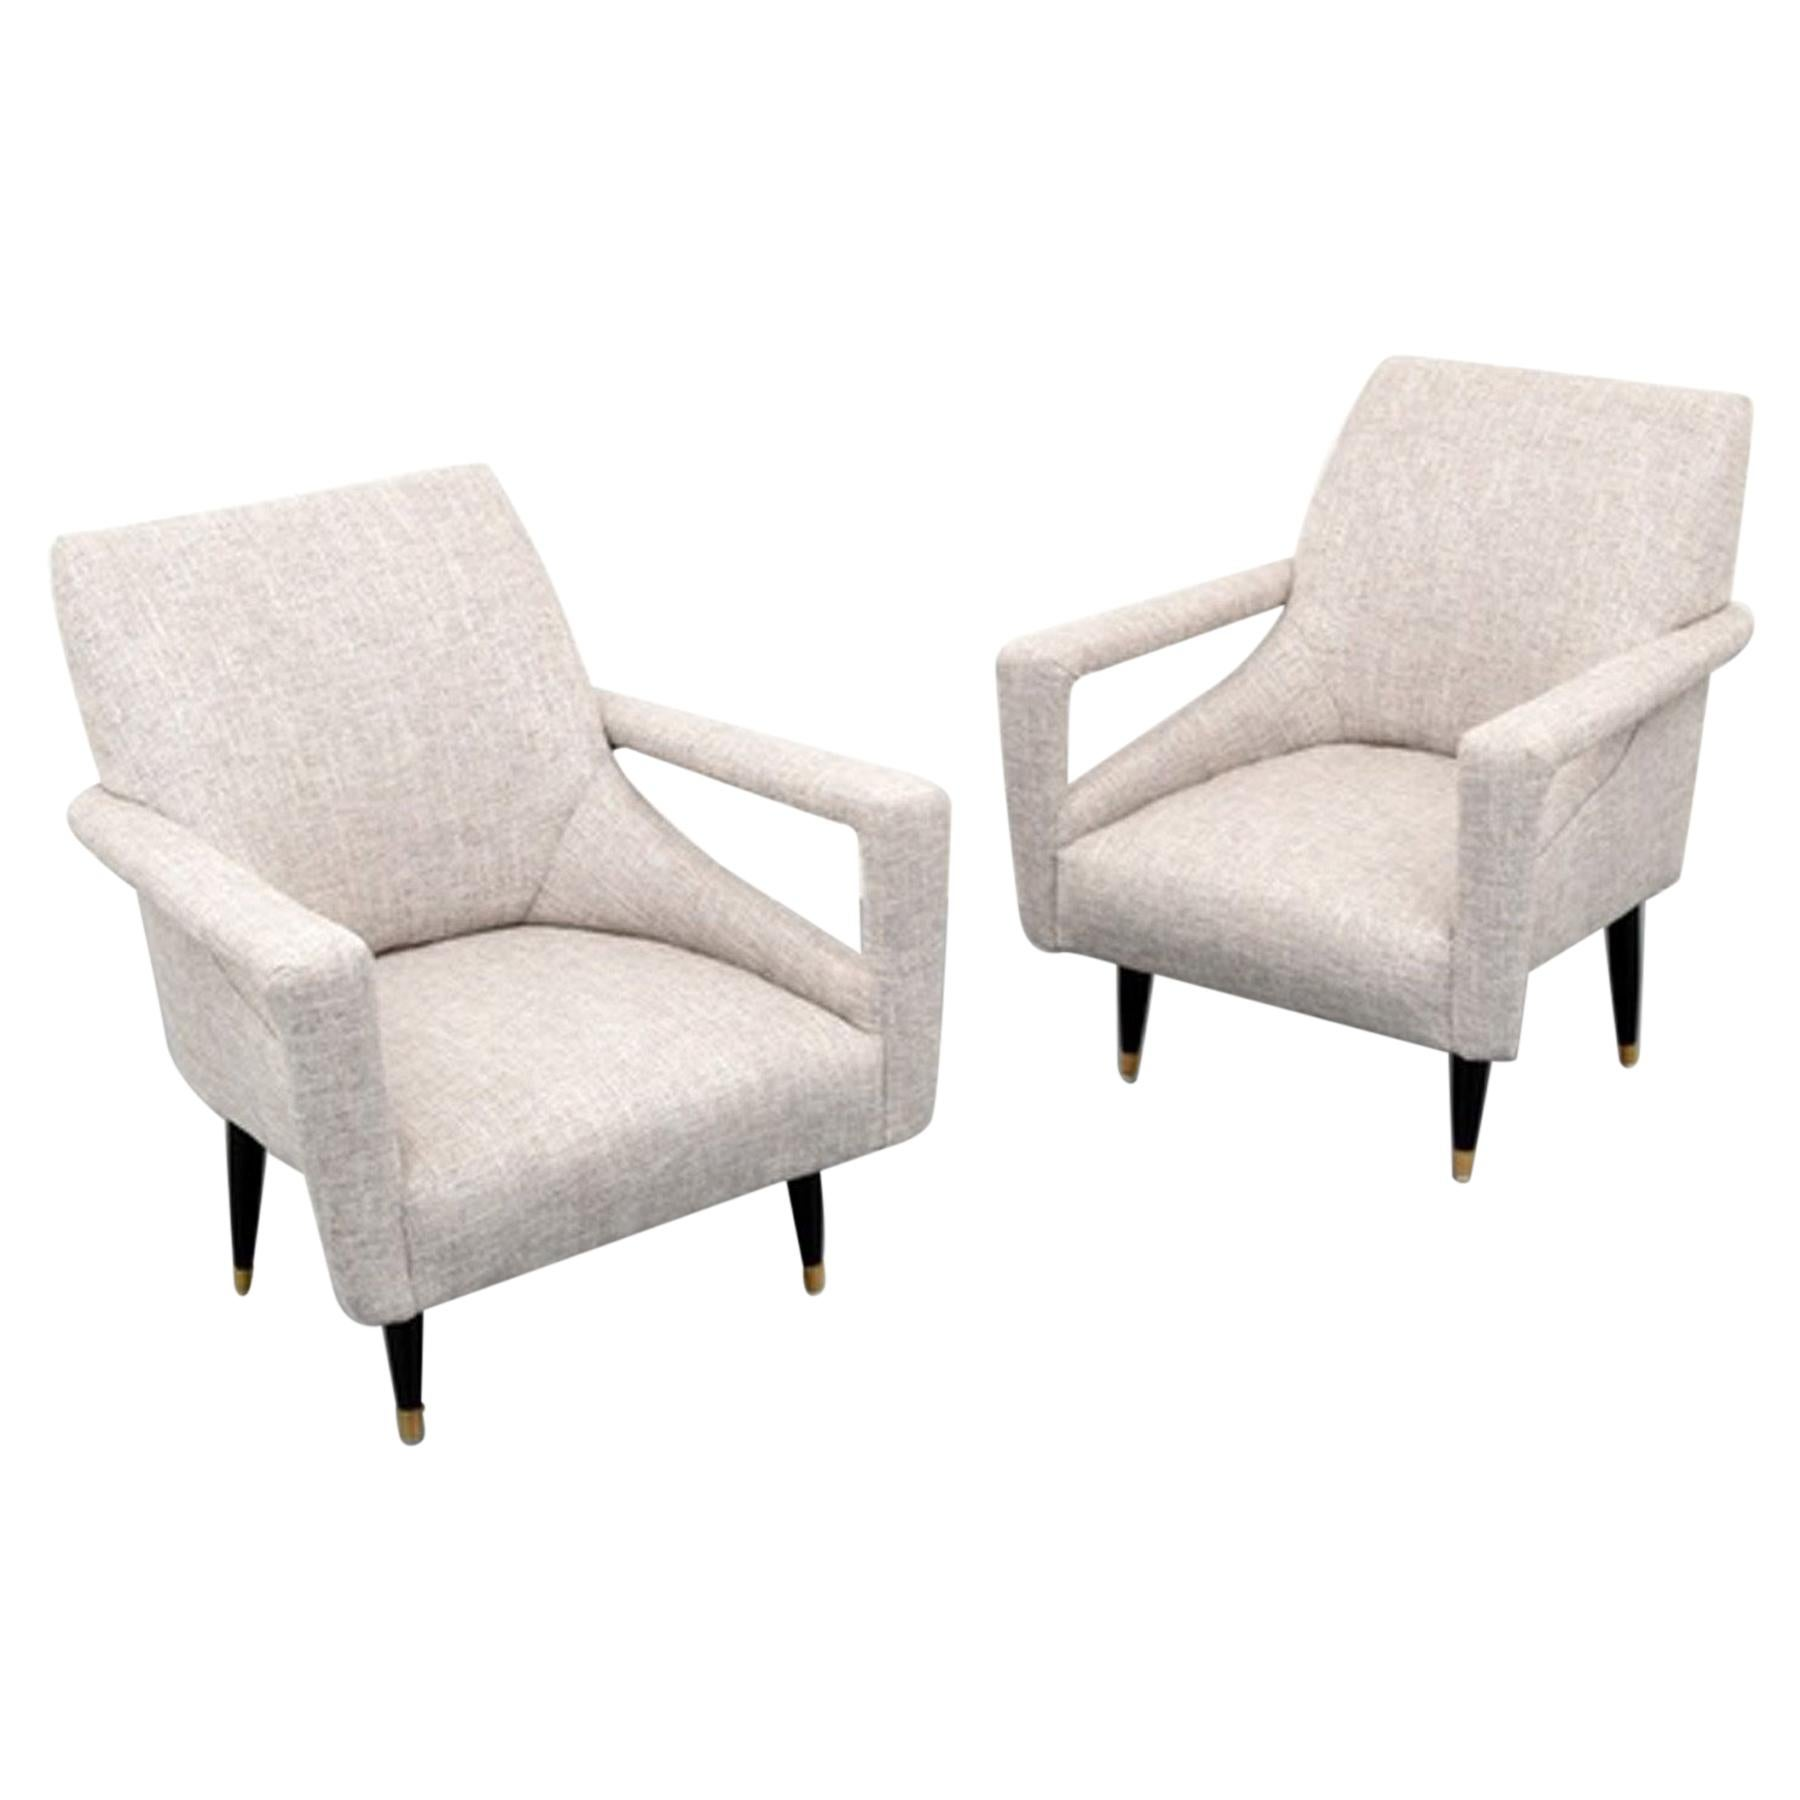 Pair of 1960's Lounge Chairs in Manner of Ico Parisi